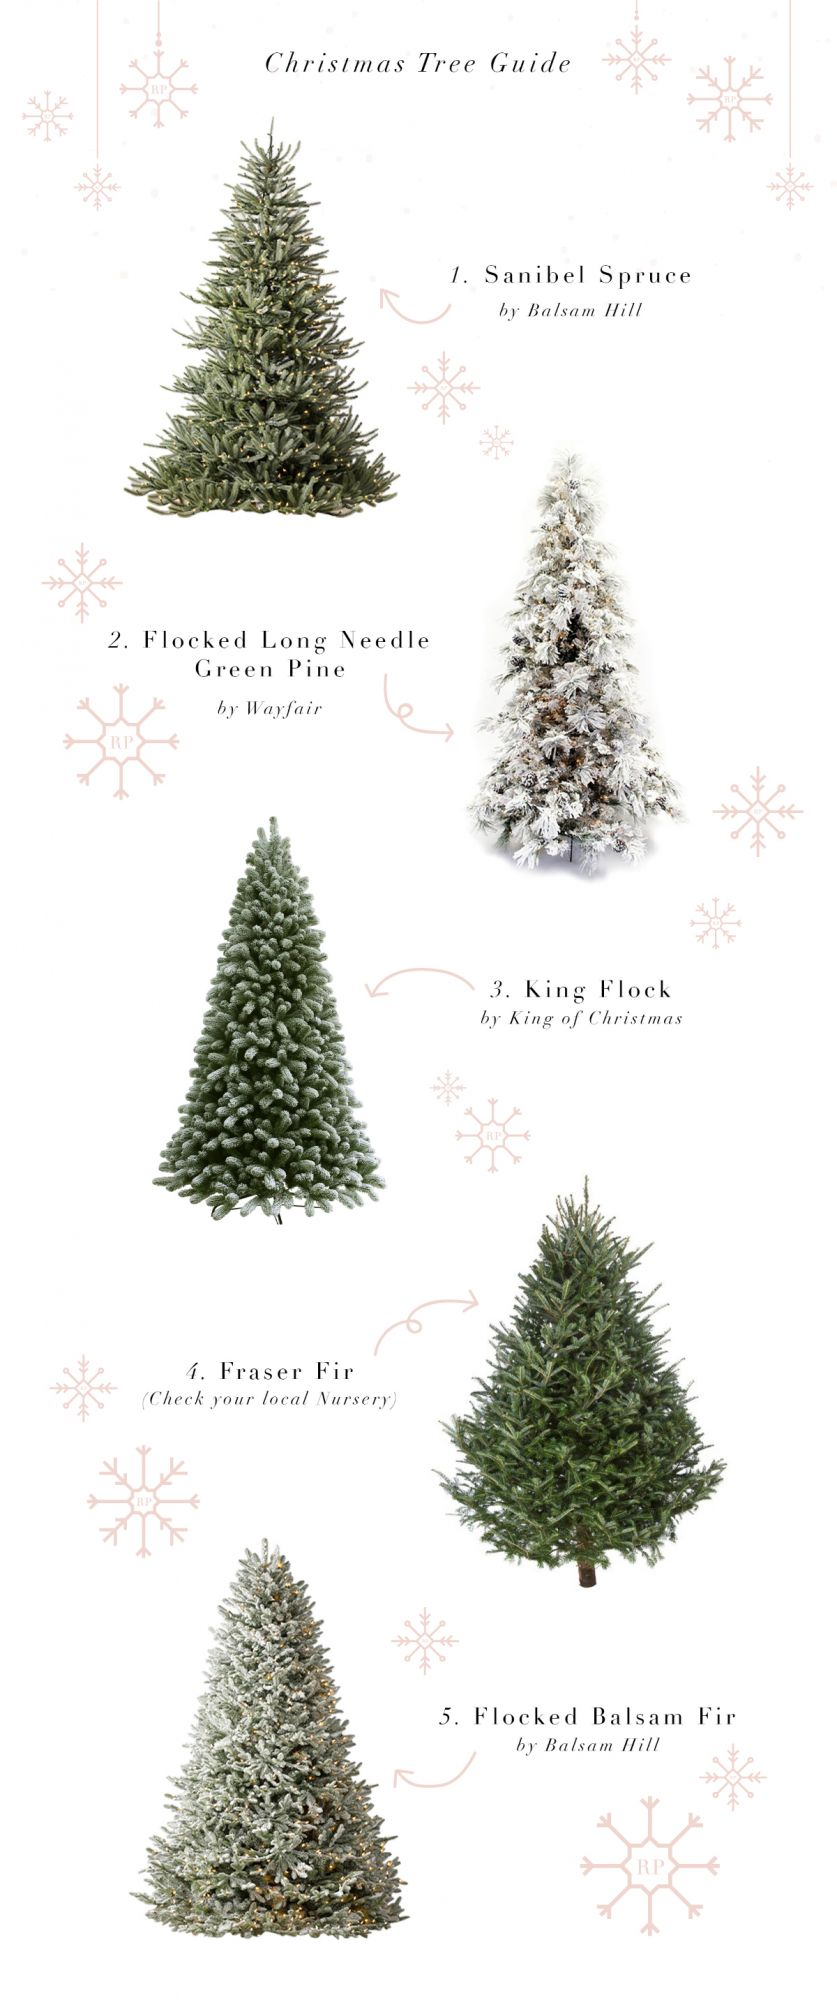 Guide To Picking Out The Perfect Christmas Tree Rach Parcell Christmas Tree Guide Christmas Tree Christmas Tree Themes